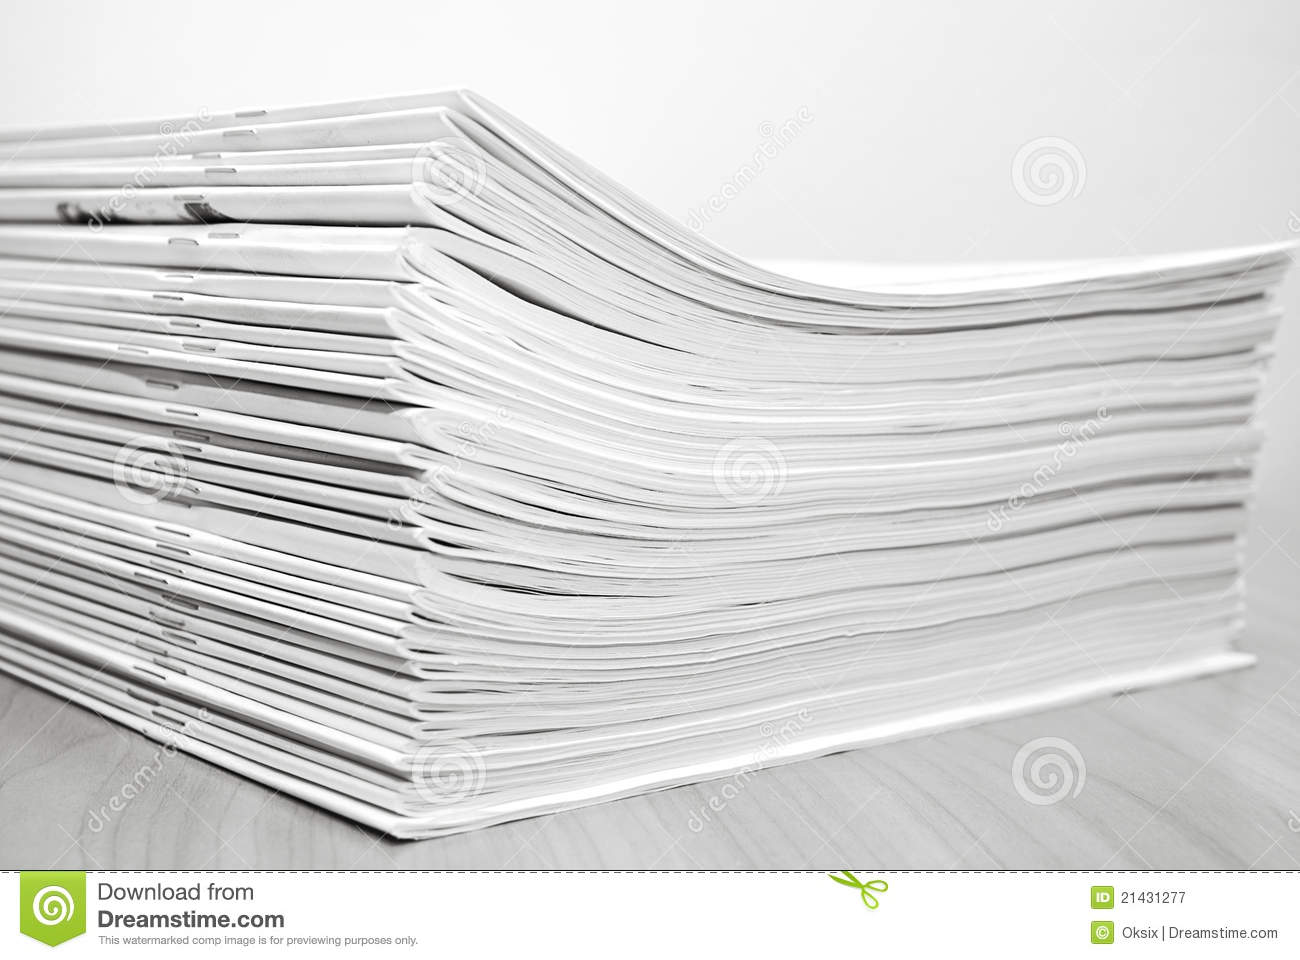 Stack journals stock image  Image of vertical, magazine - 21431277